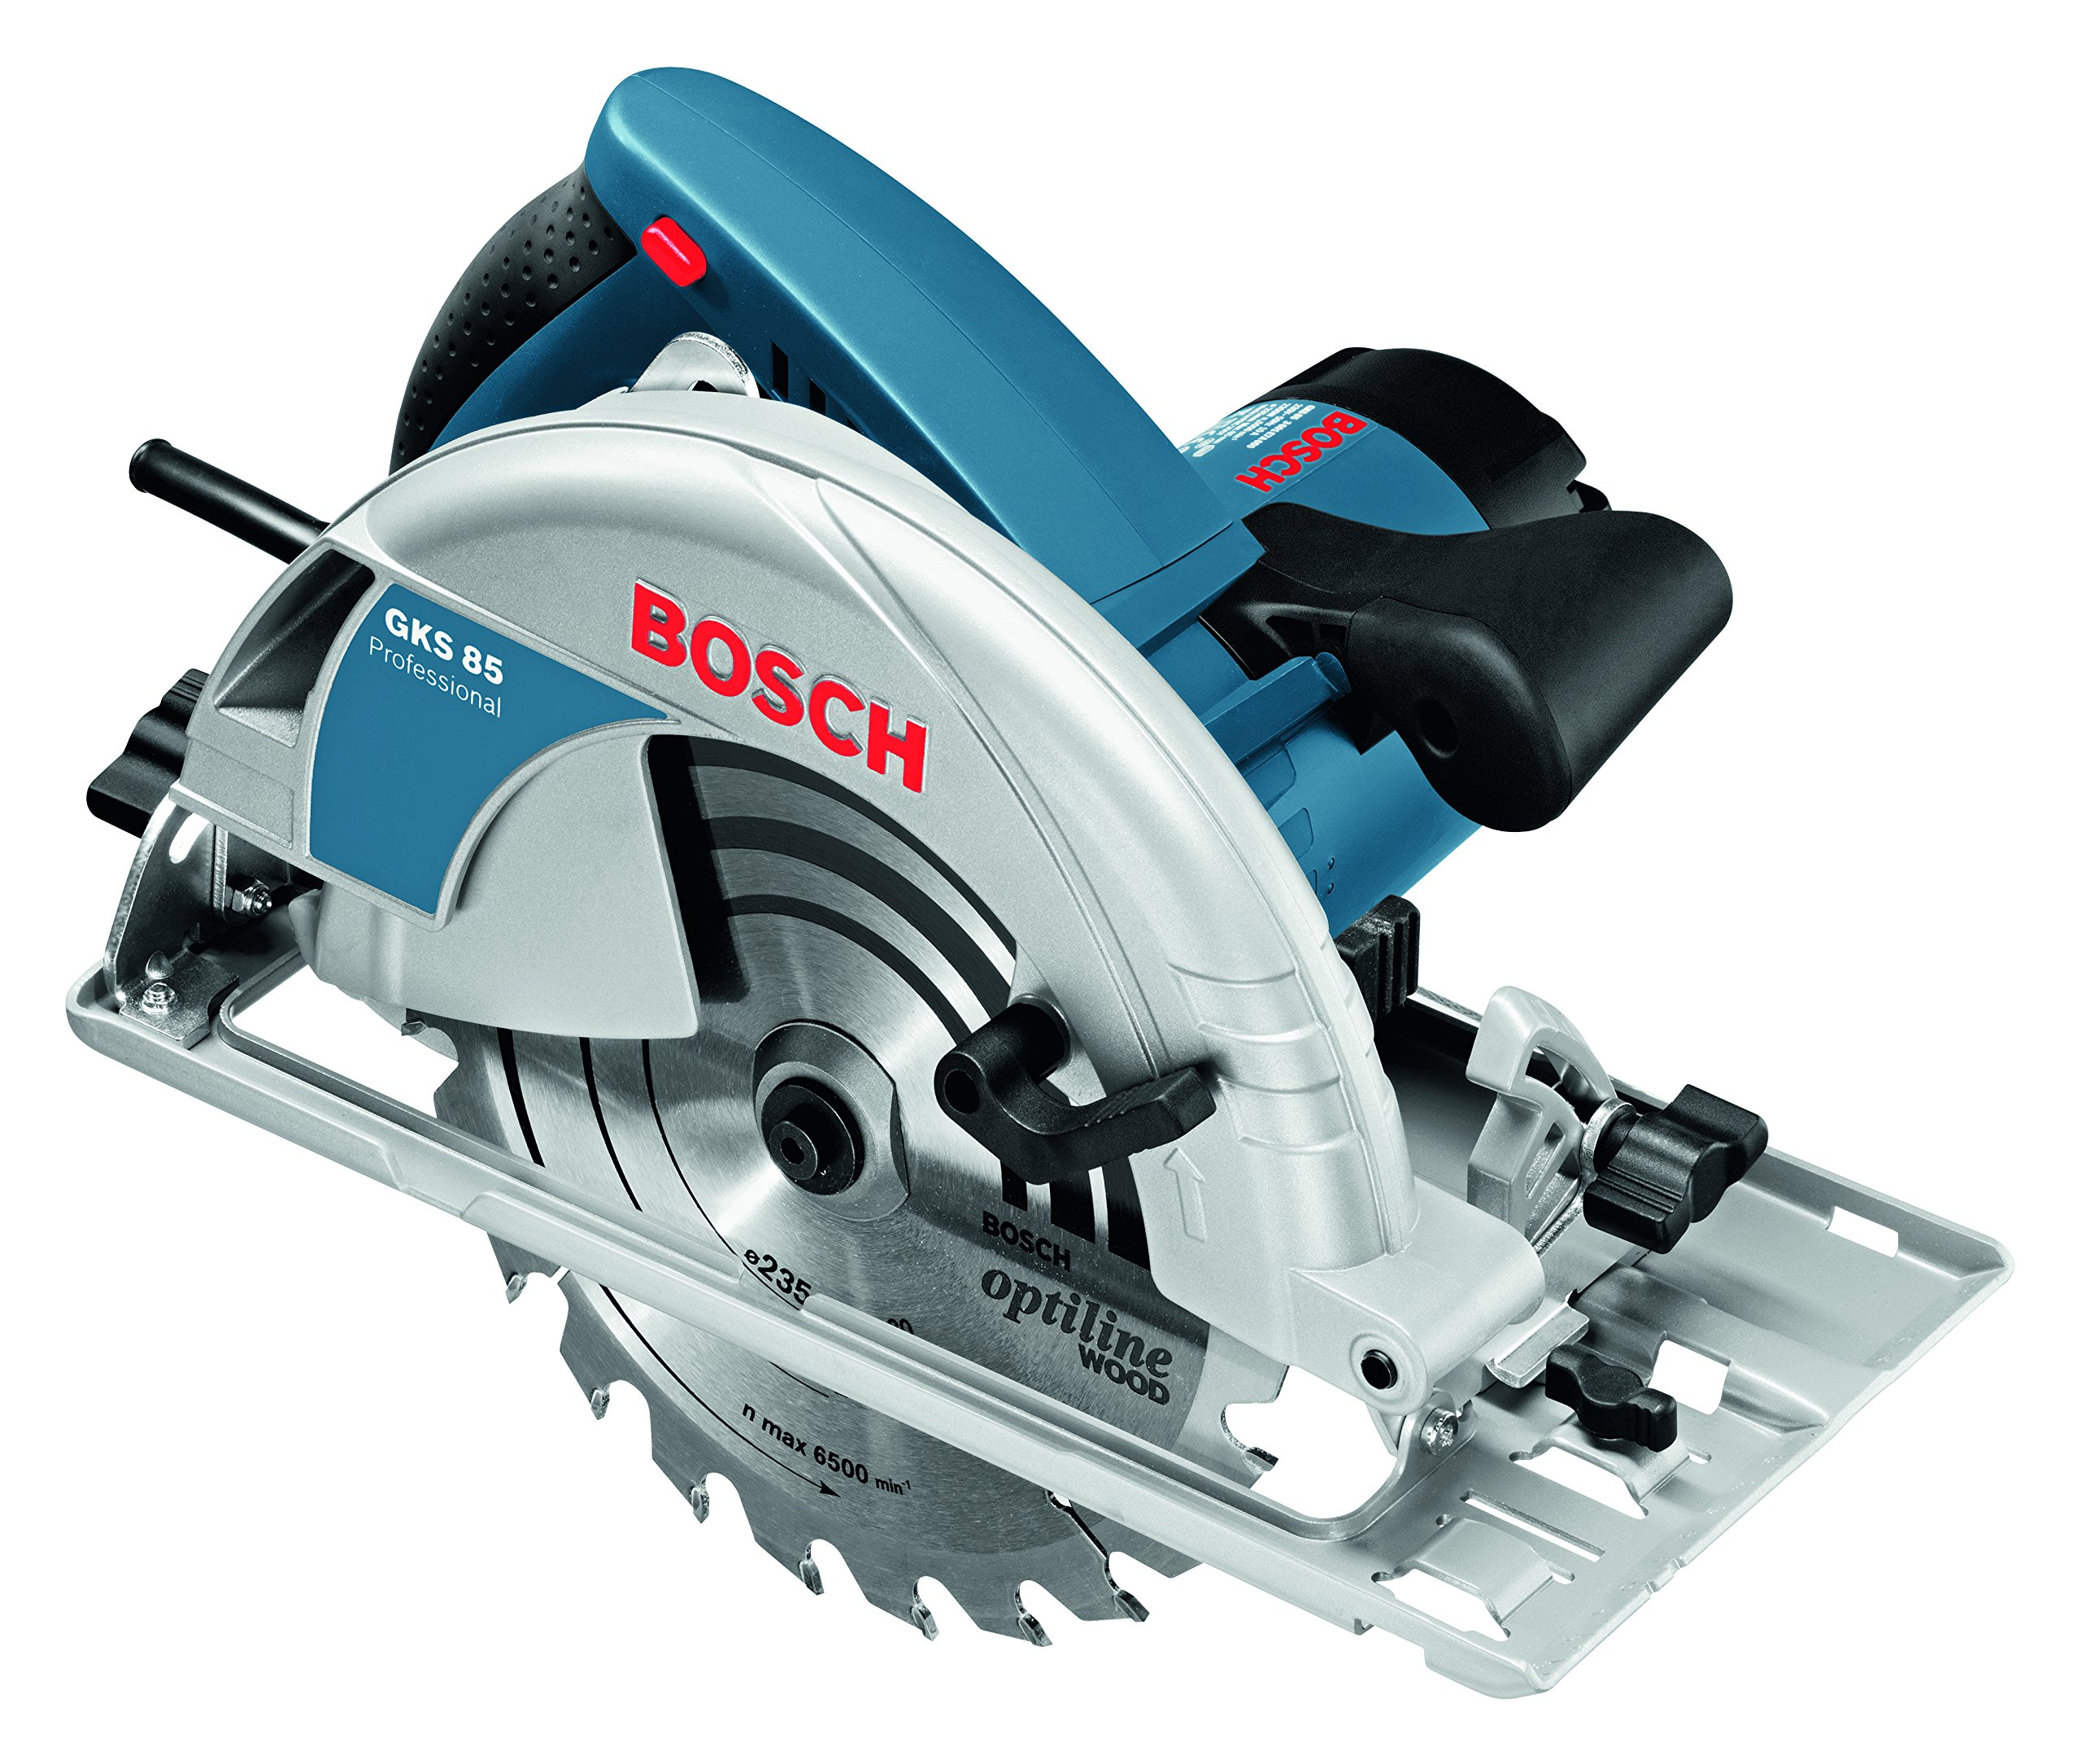 Bosch Professional Gks 85 Corded 110 V Circular Saw 3 Pin Industrial Plug Buy Online In India At Desertcart In Productid 50056390